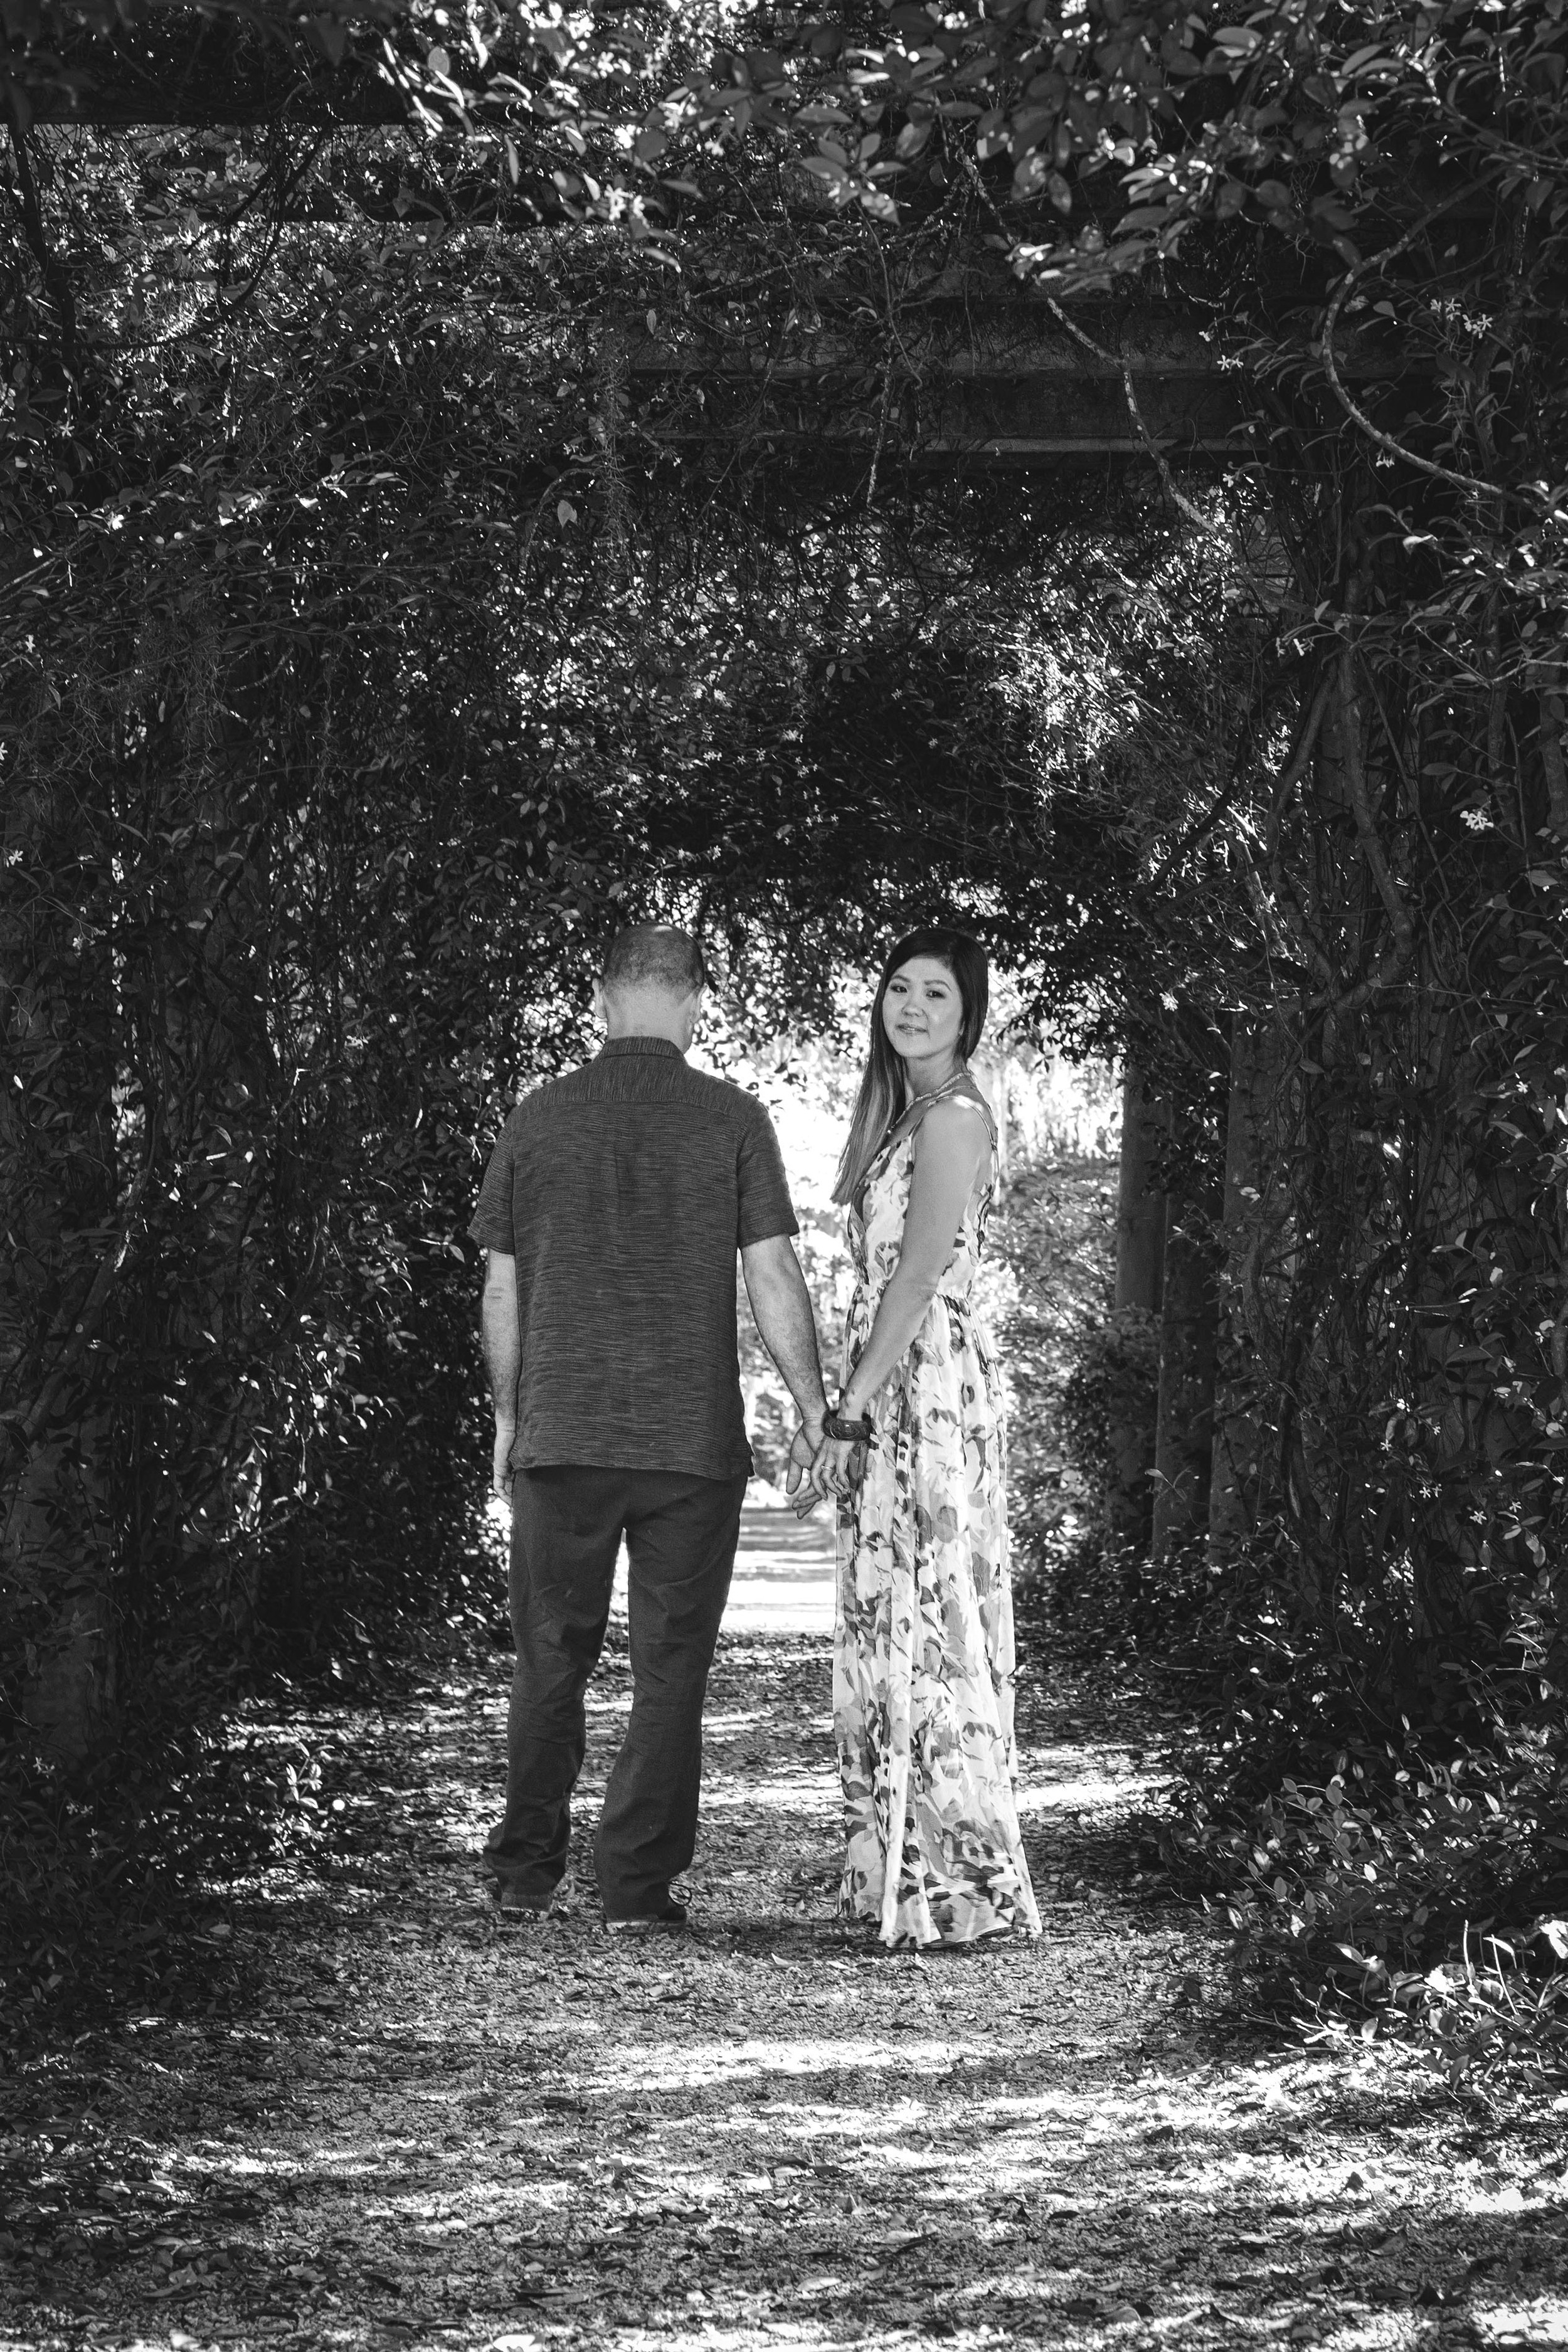 Airlie_Gardens_Engagement_Photography_Brian_&_Amy_30.jpg